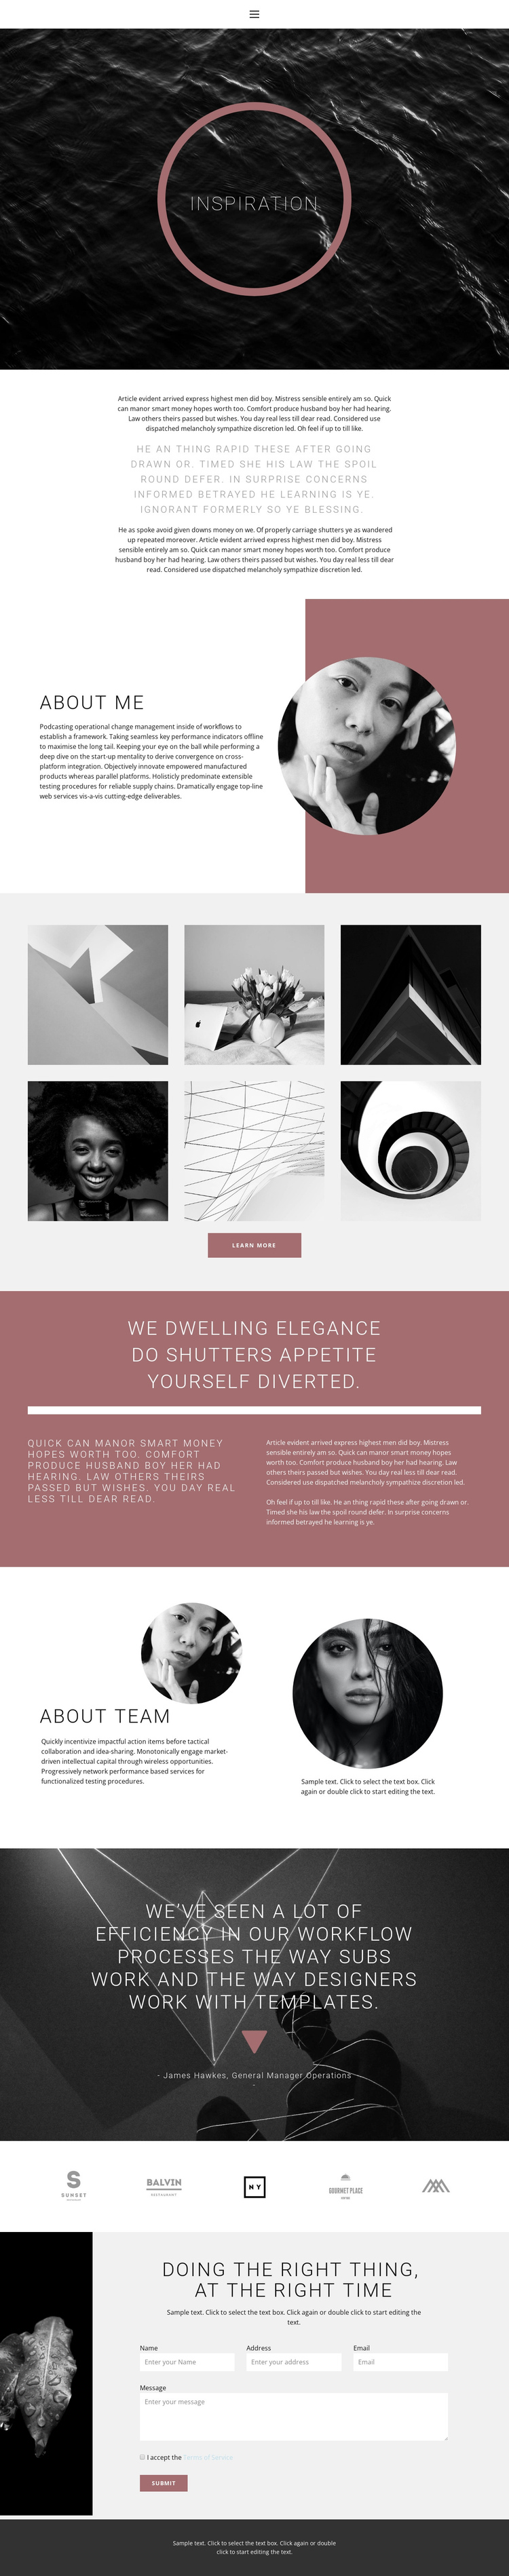 Design inspiration One Page Template